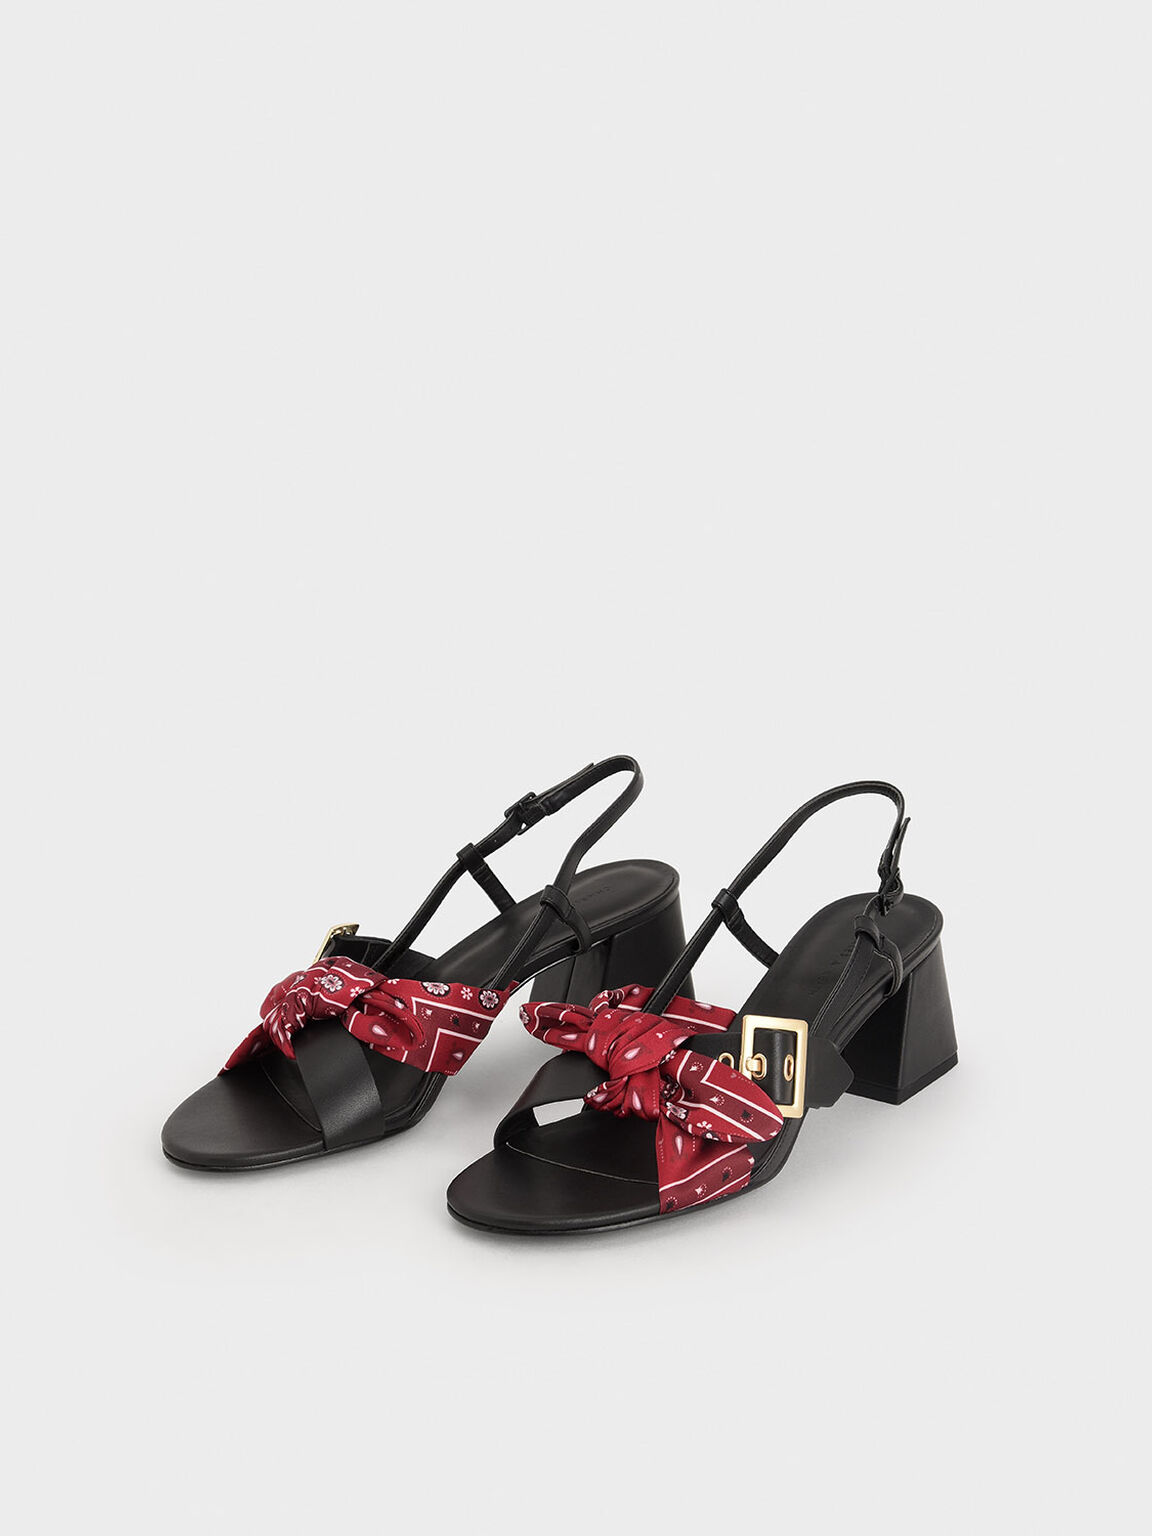 Purpose Collection -  Bandana Print Knot Slingbacks, Red, hi-res